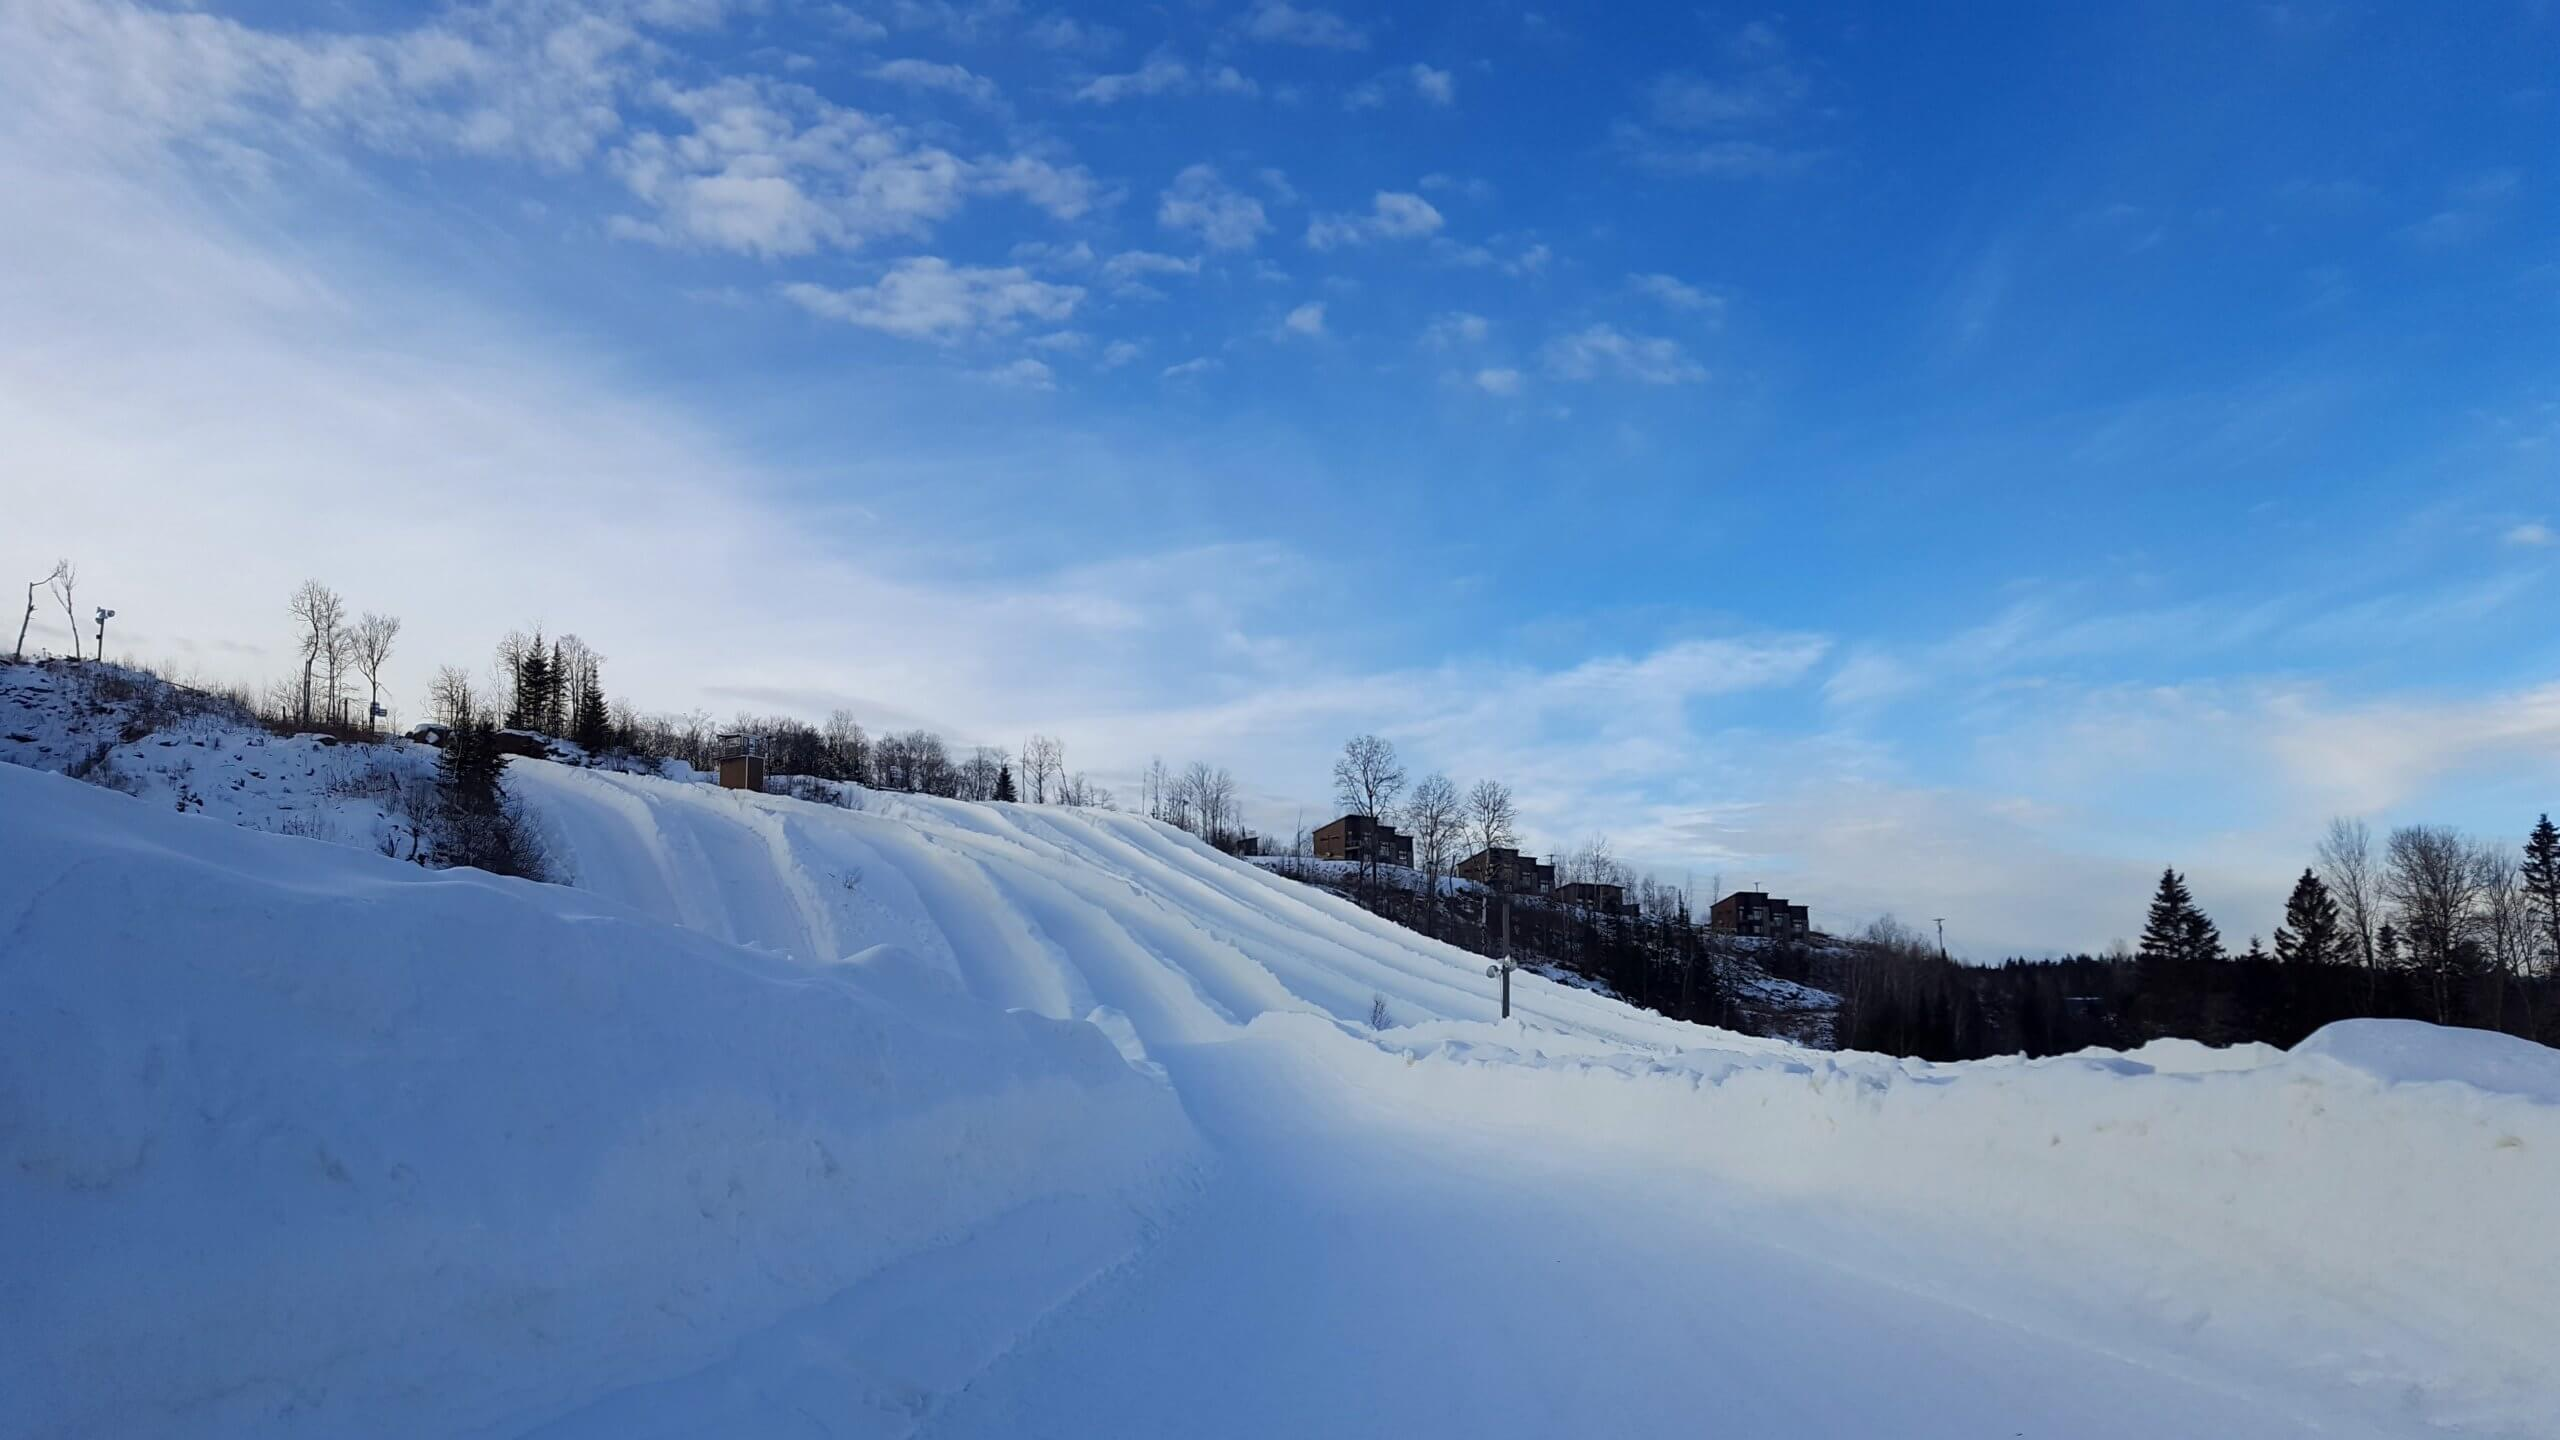 Big snow slides